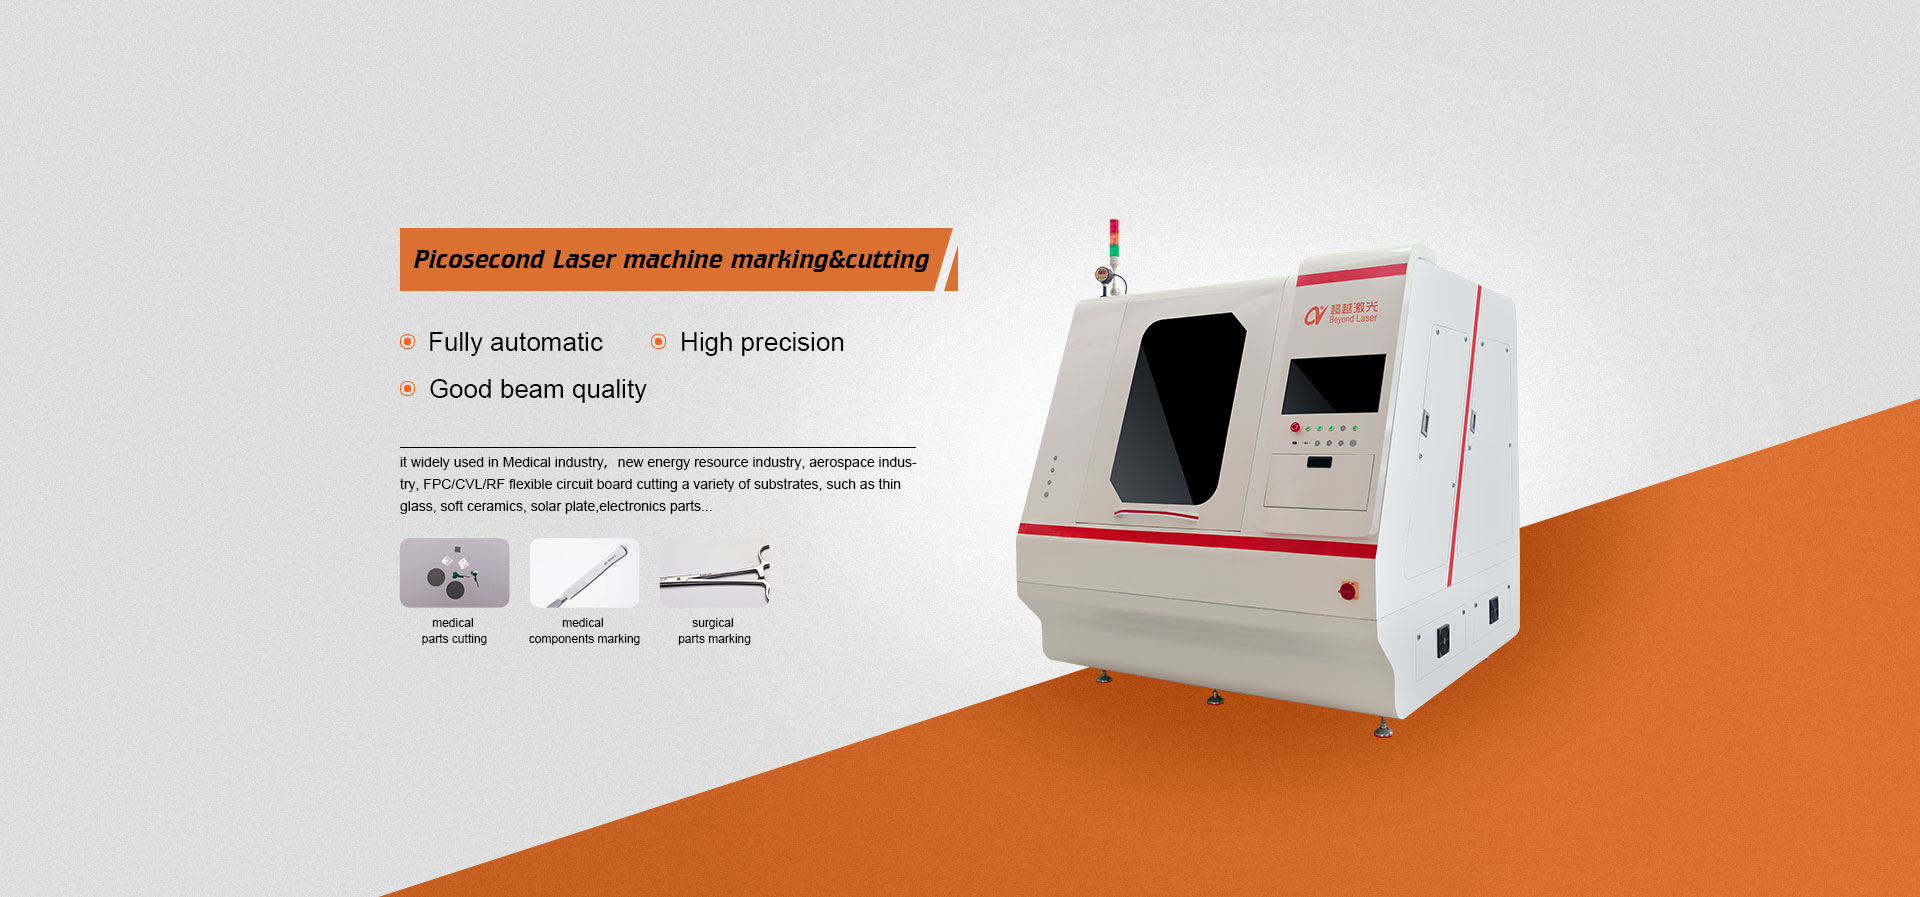 beyond laser intelligent equipment laser micromachining picosecond laser cutting marking machine